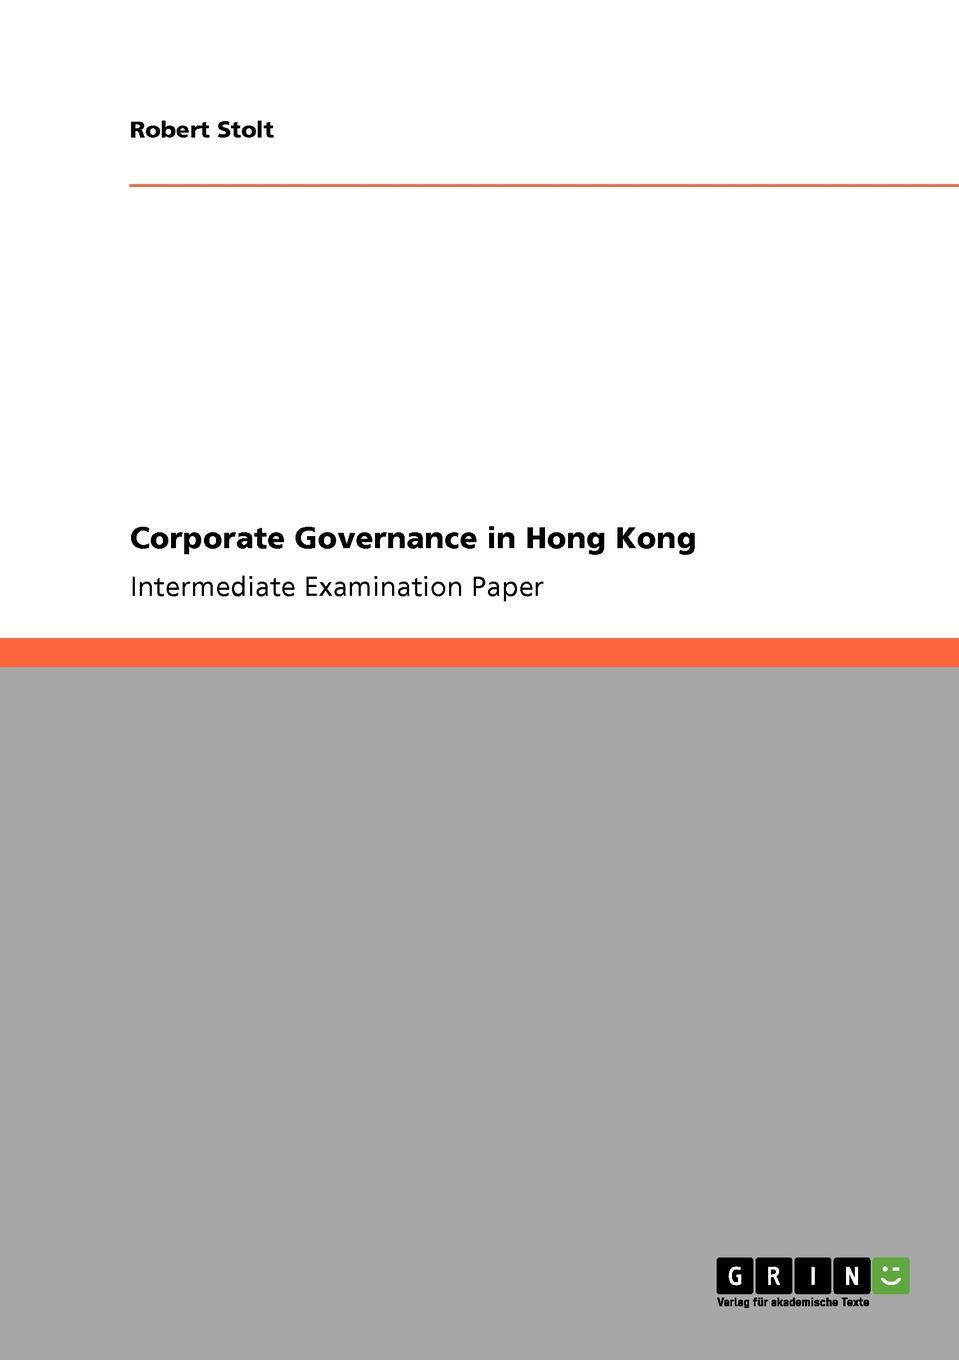 Robert Stolt Corporate Governance in Hong Kong minow nell corporate governance